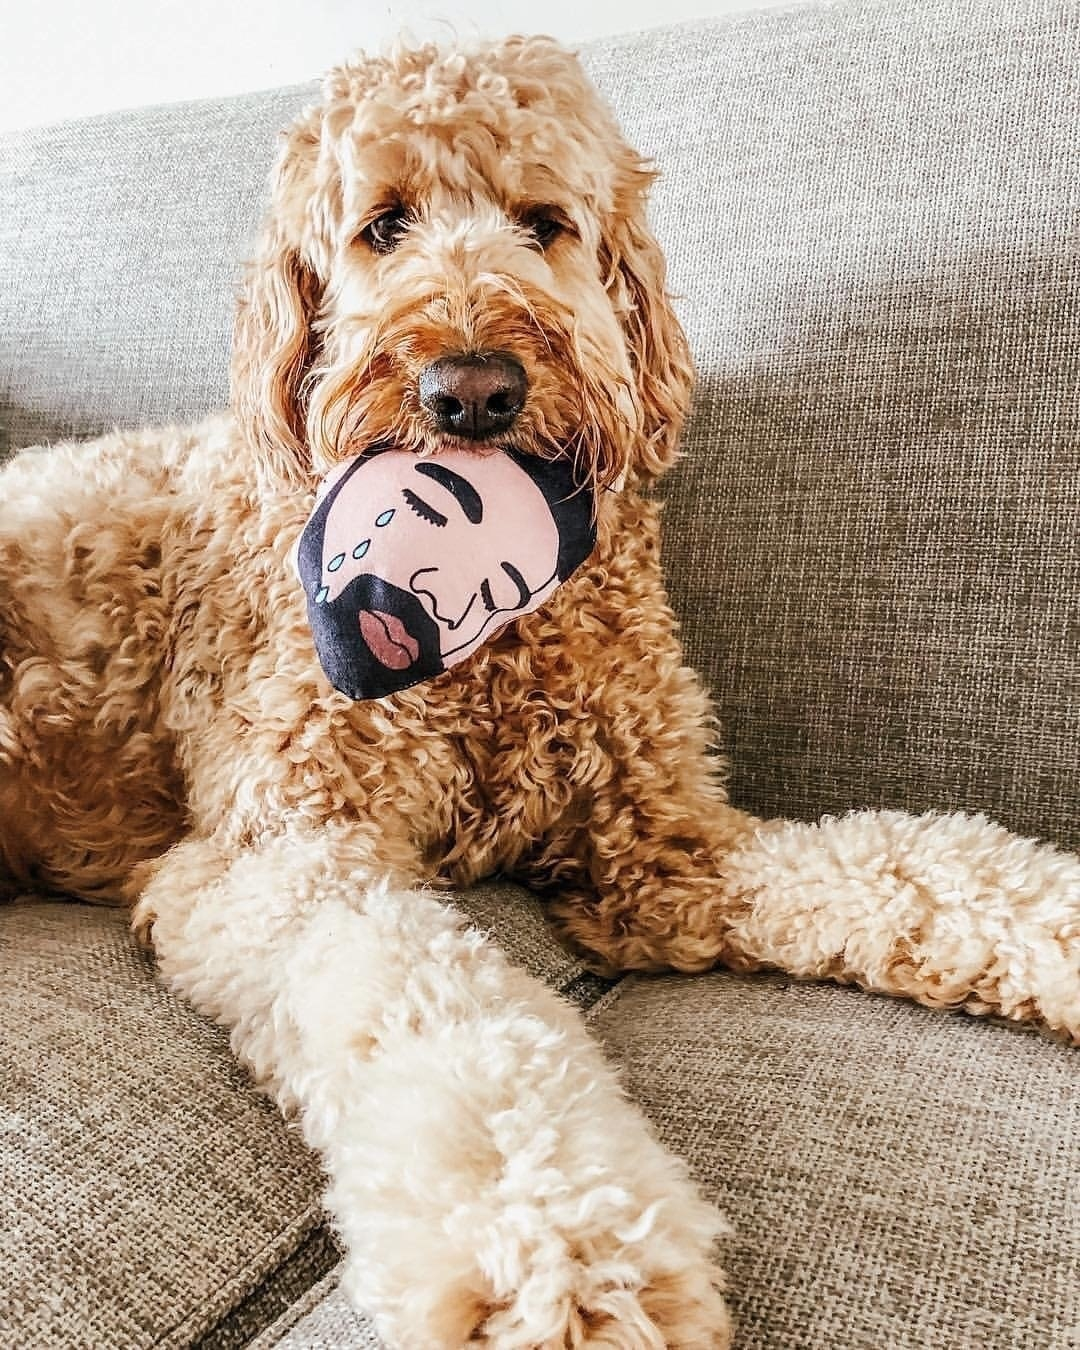 Fluffy dog with toy in its mouth